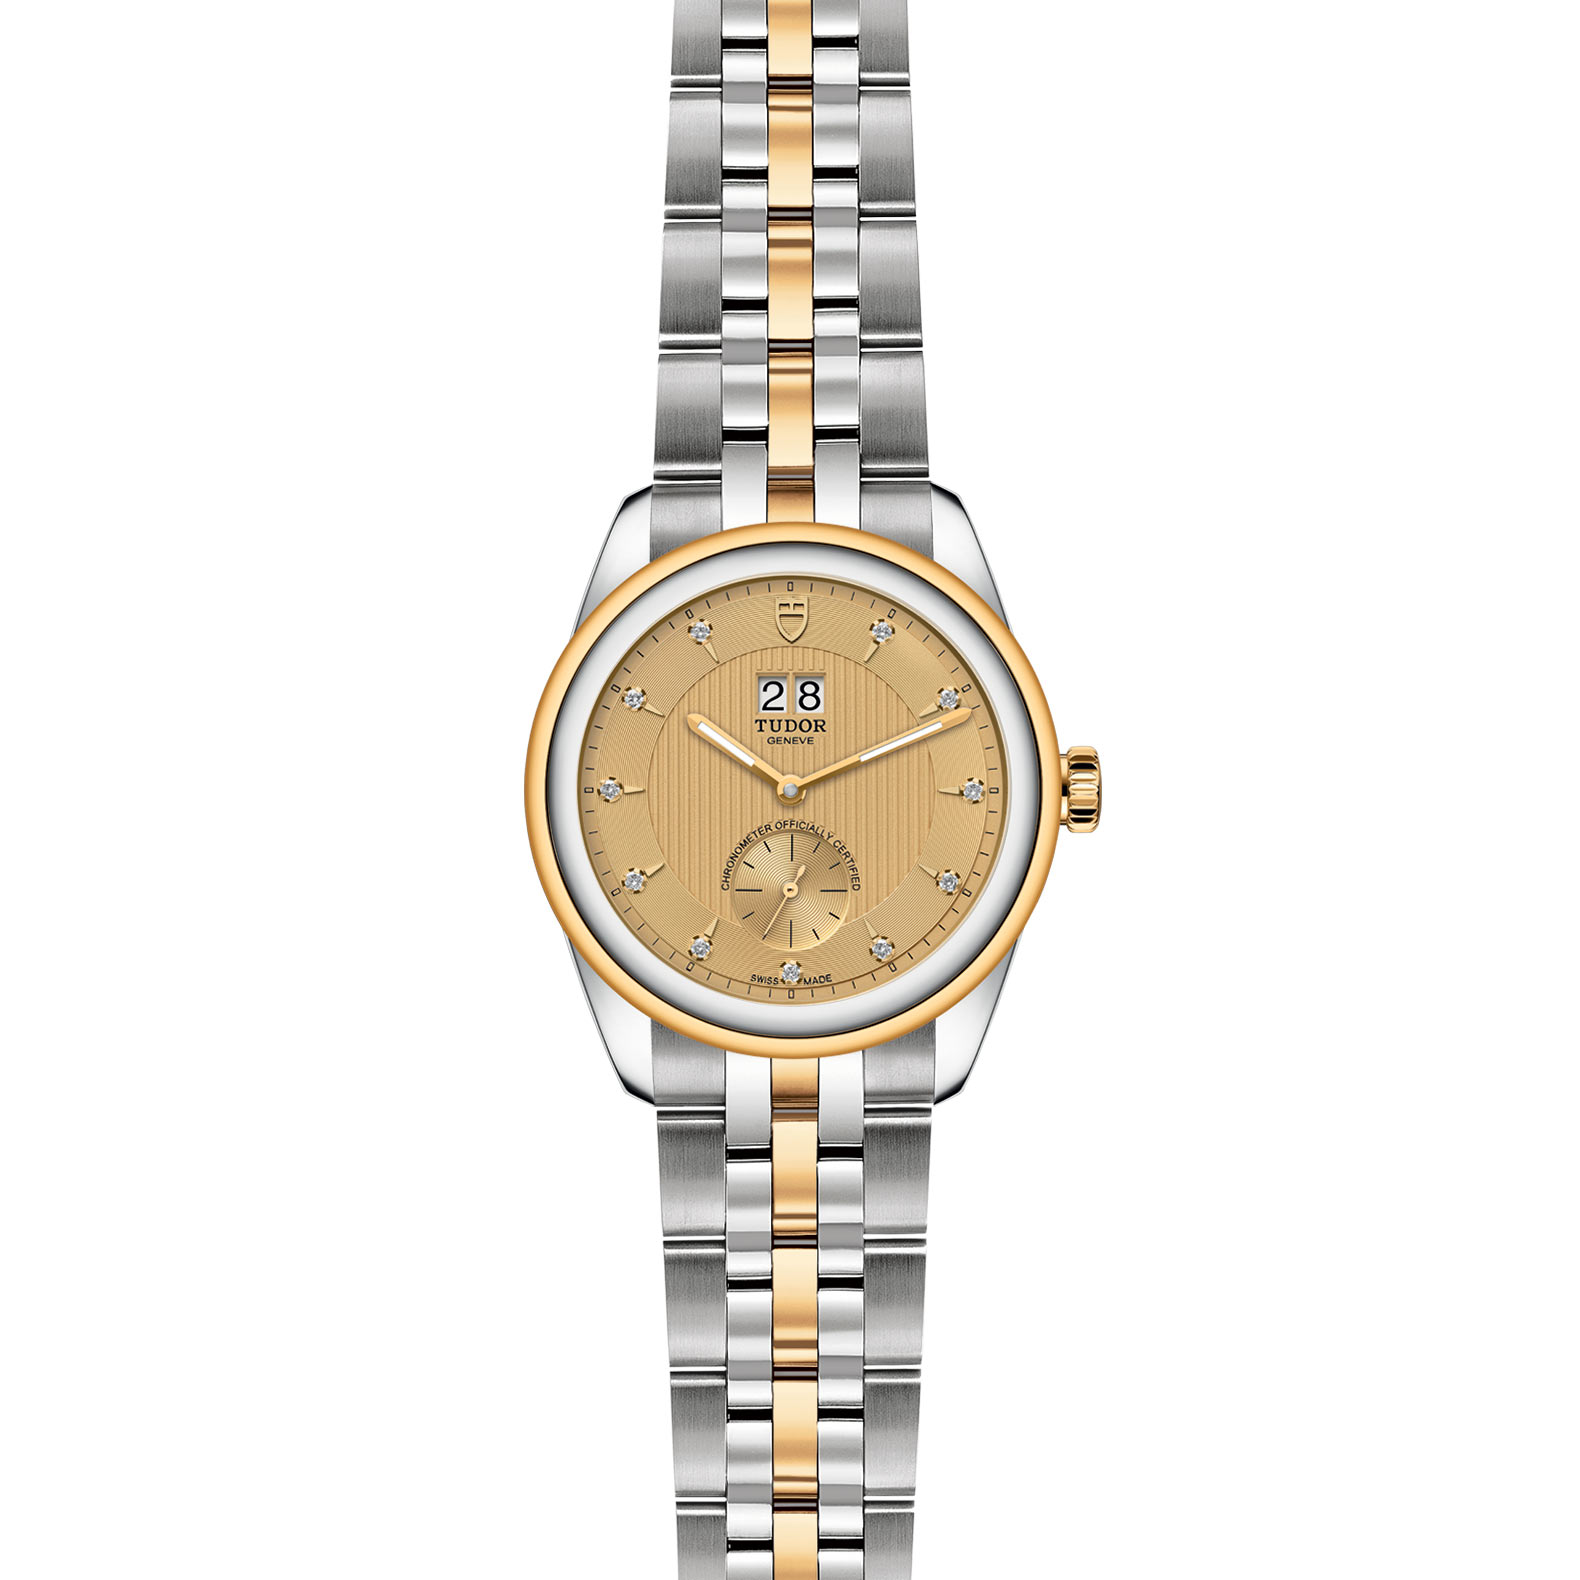 TUDOR Glamour Double Date M57103 0006 Frontfacing